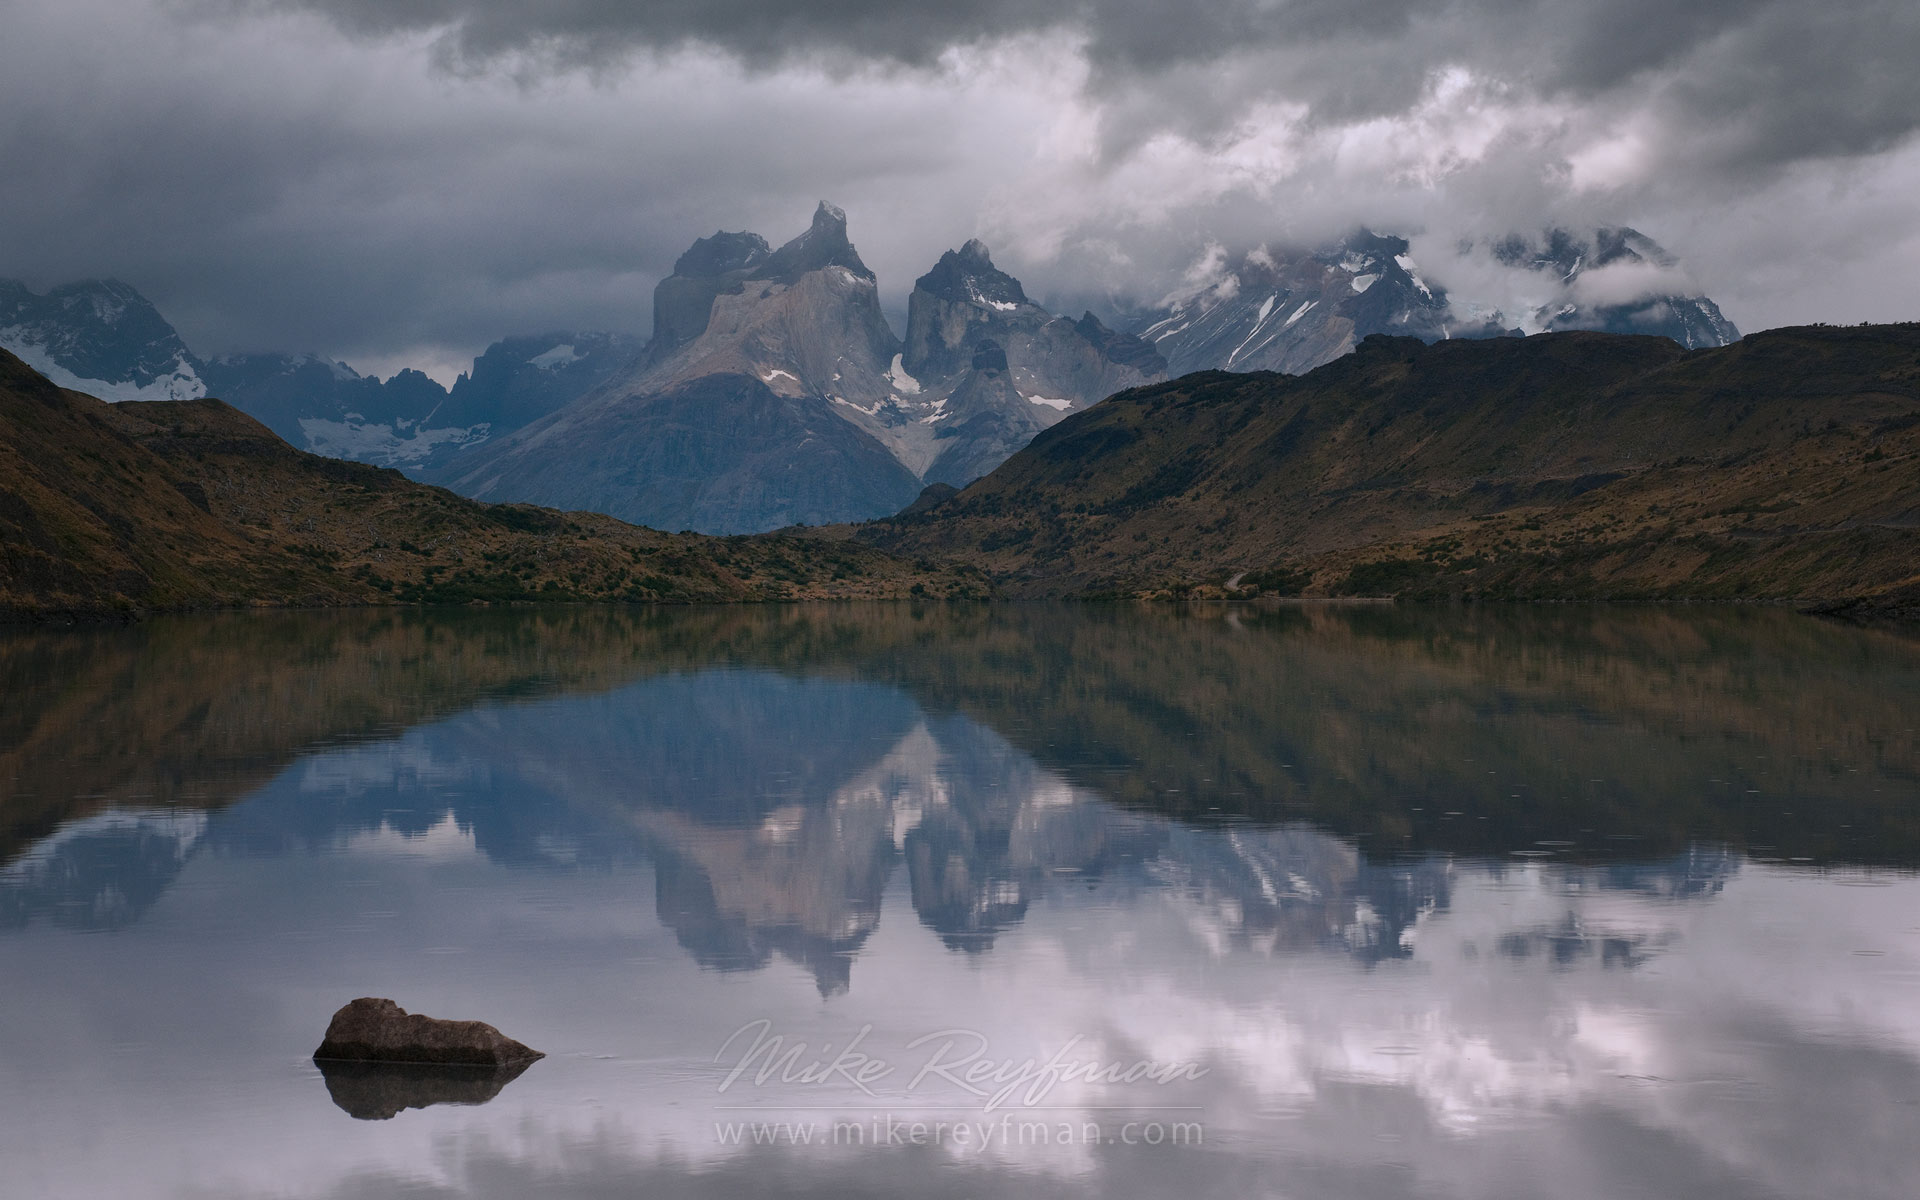 Cuernos reflections at Puente Weber. Torres del Paine National Park, Ultima Esperanza Province, Magallanes and Antartica Chilena Region XII, Patagonia, Chile. - Torres-Del-Paine-National-Park-Patagonia-Chile - Mike Reyfman Photography